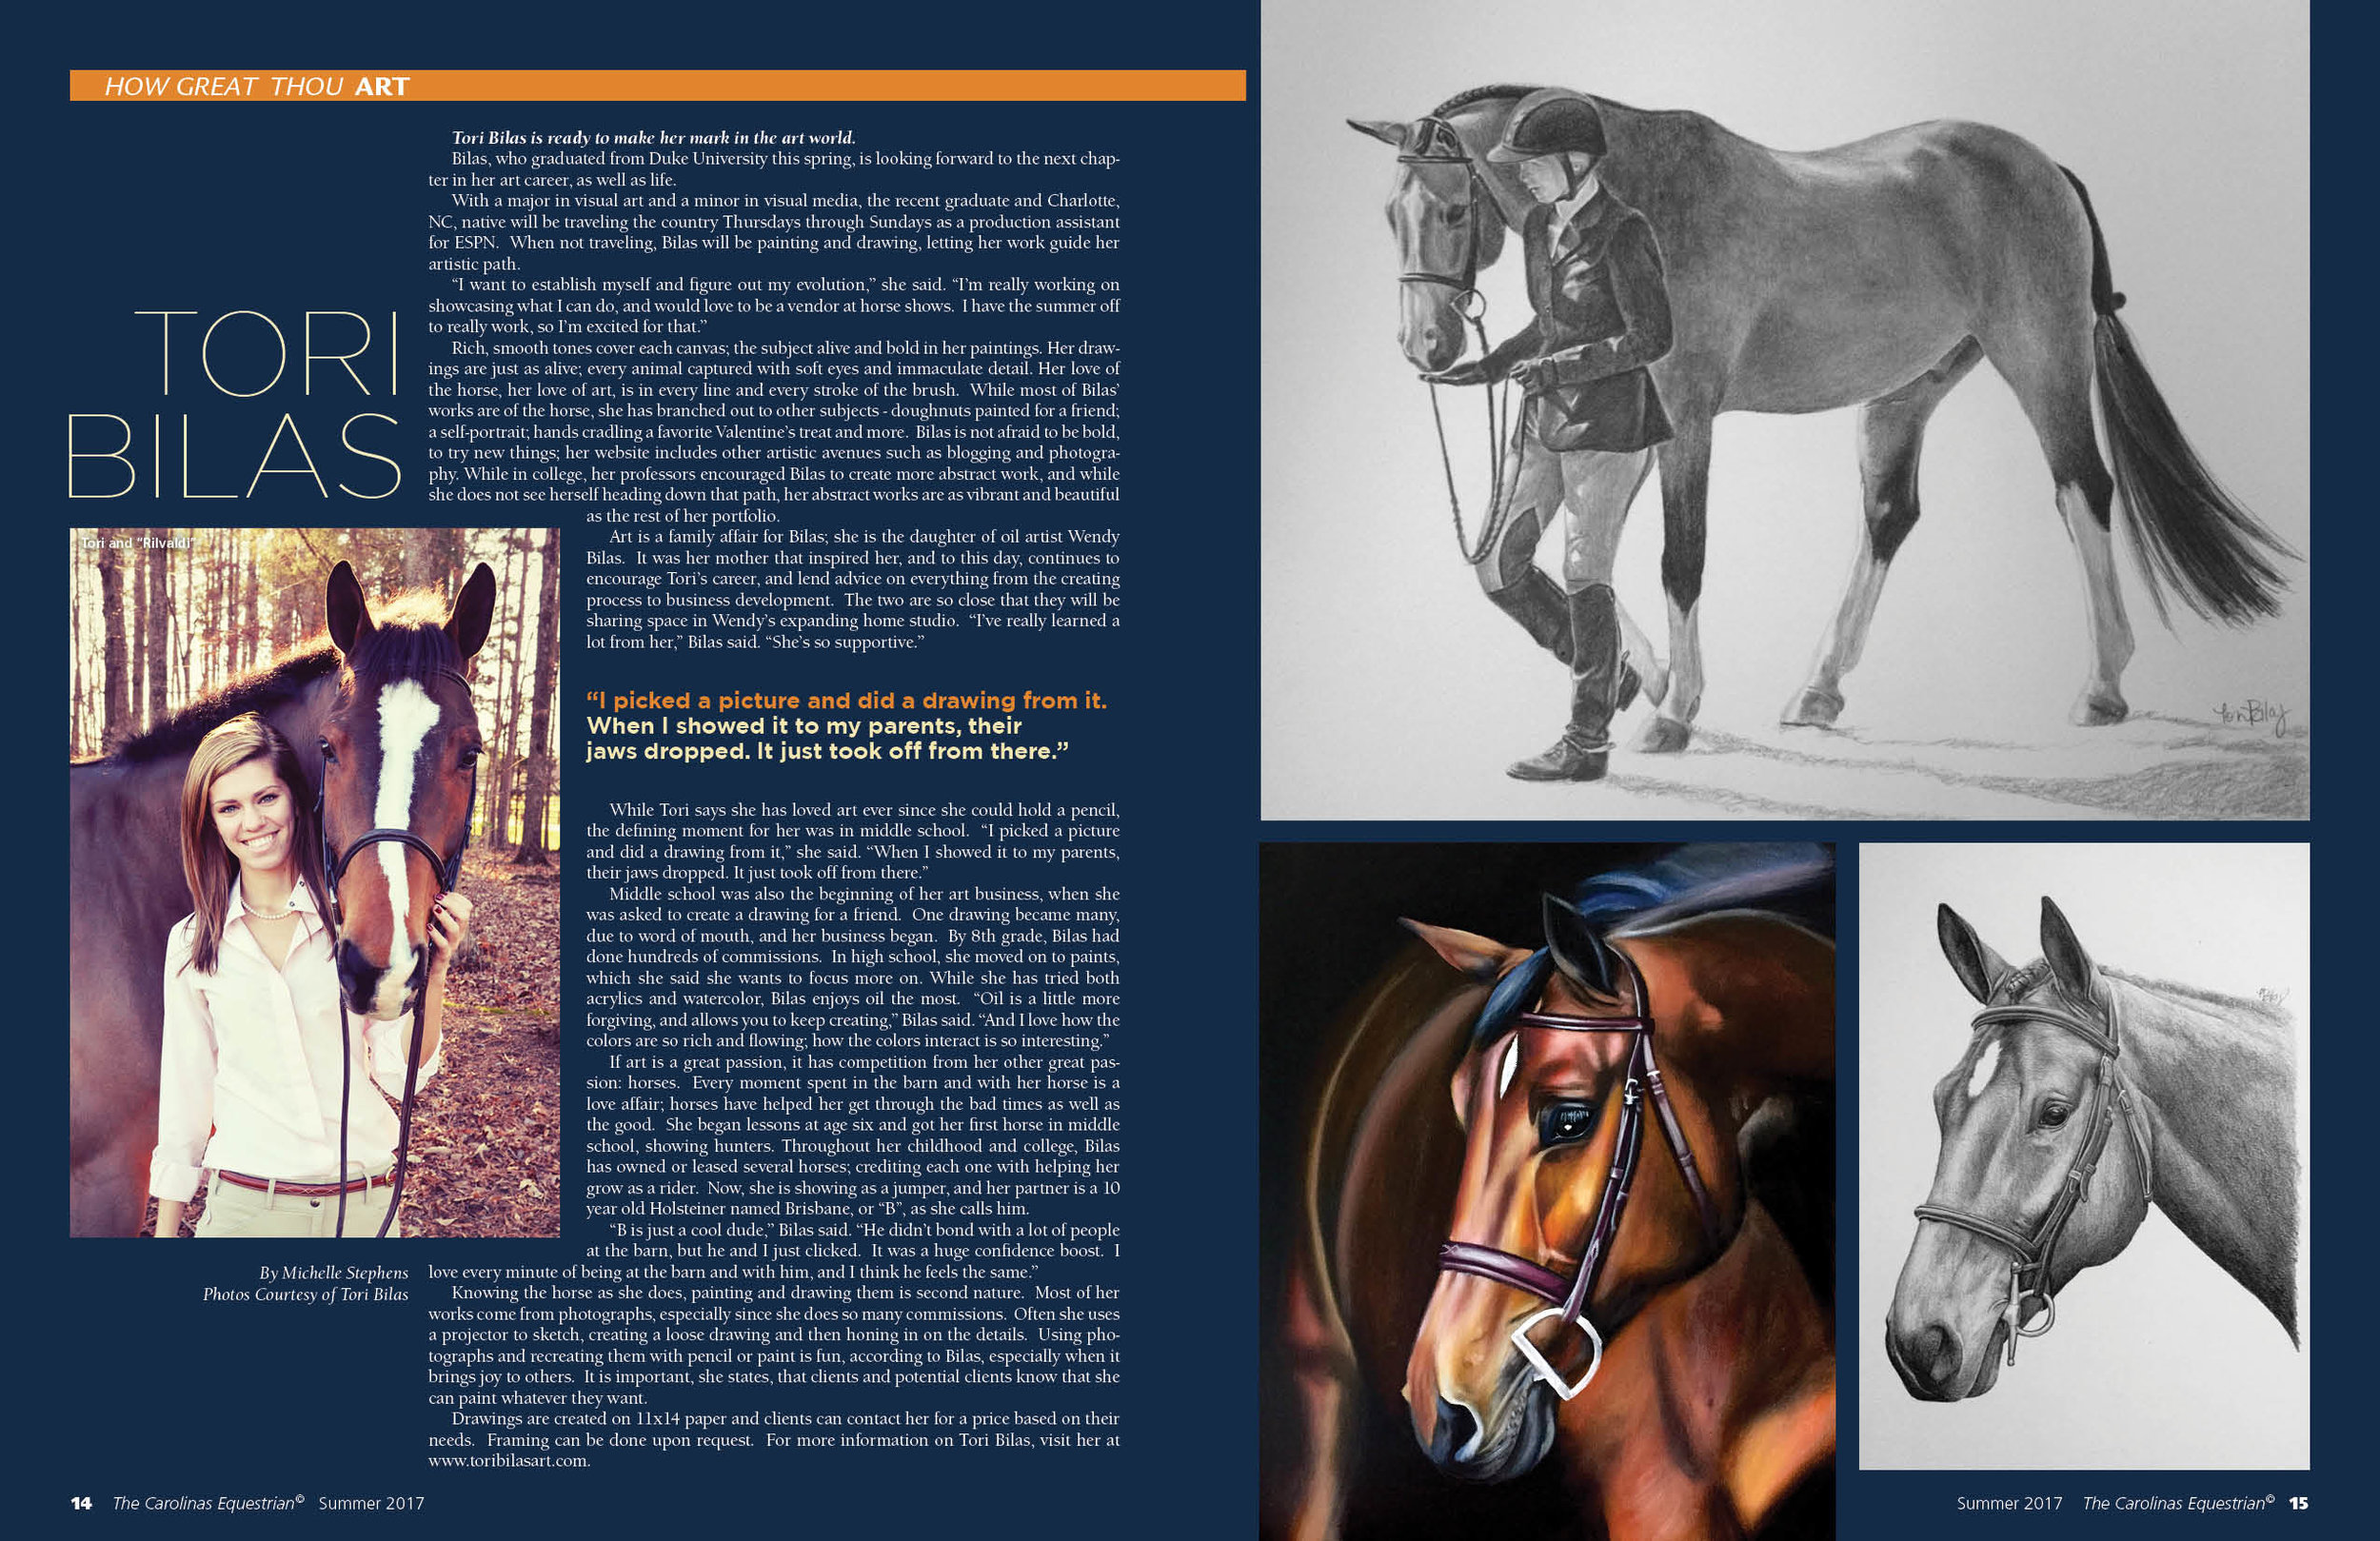 Article in   Carolinas Equestrian   written by Michelle Stephens